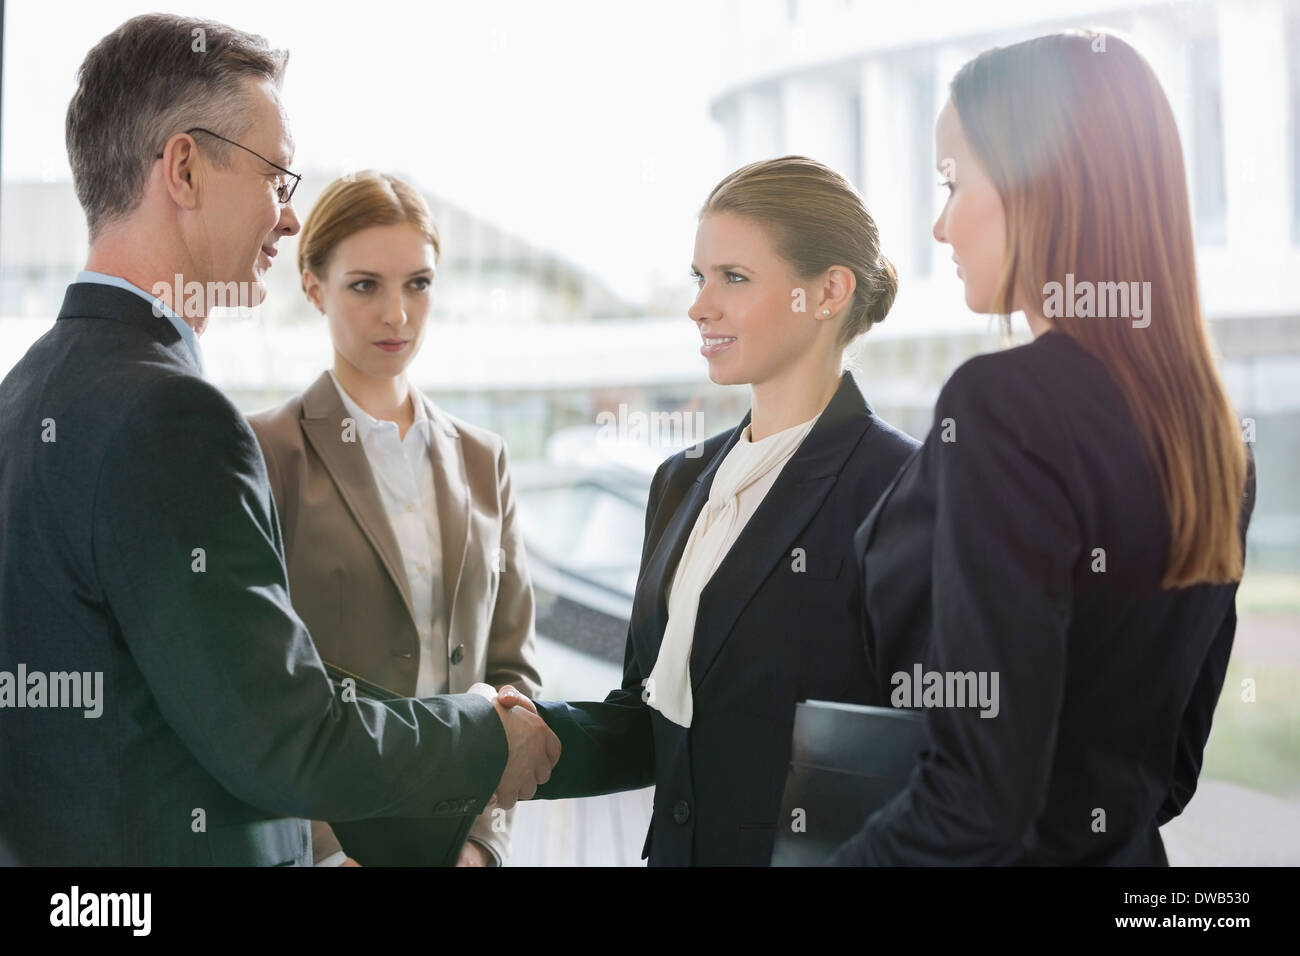 Confident business people shaking hands at workplace - Stock Image